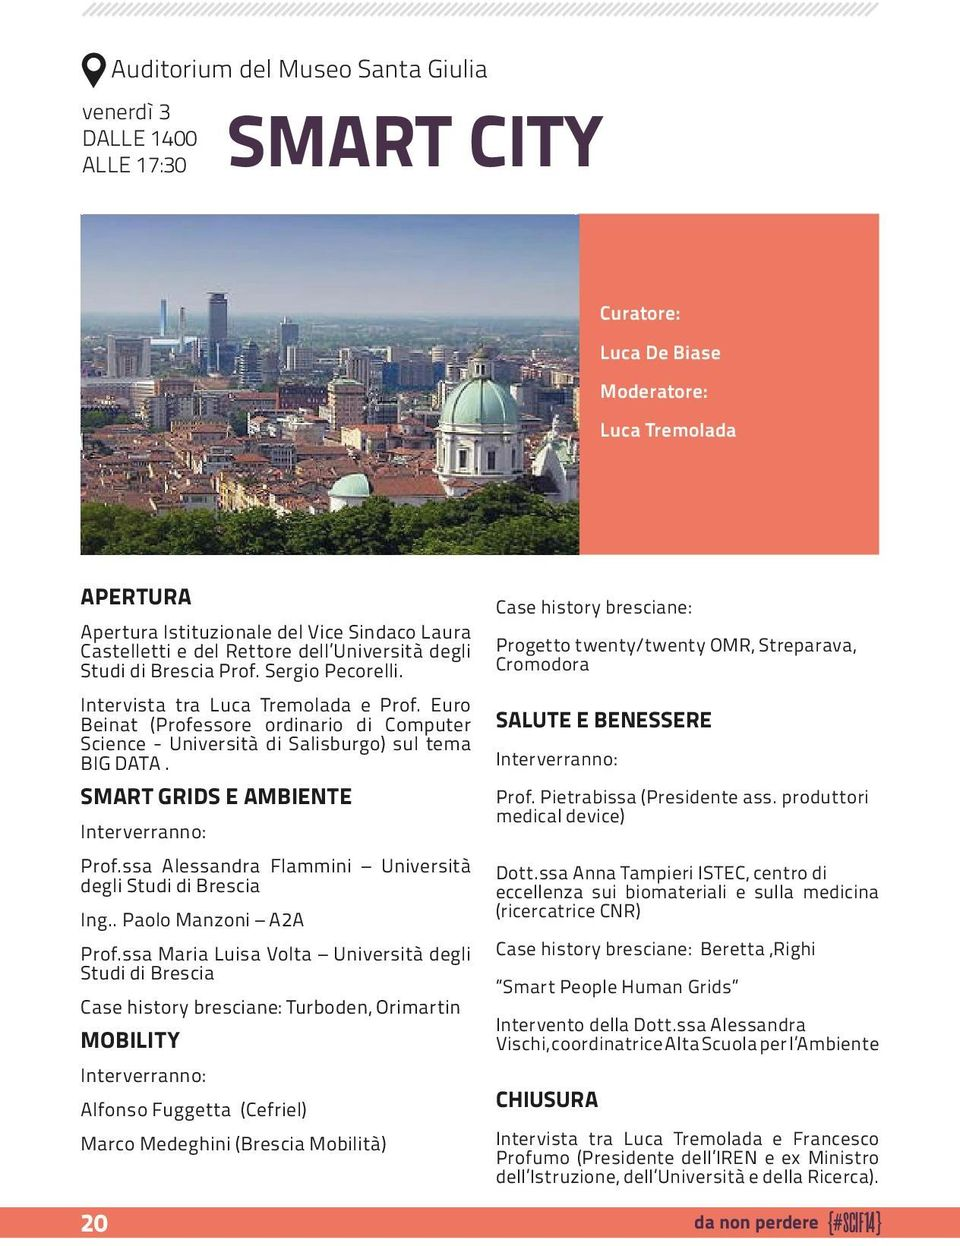 Euro Beinat (Professore ordinario di Computer Science - Università di Salisburgo) sul tema BIG DATA. SMART GRIDS E AMBIENTE Interverranno: Prof.